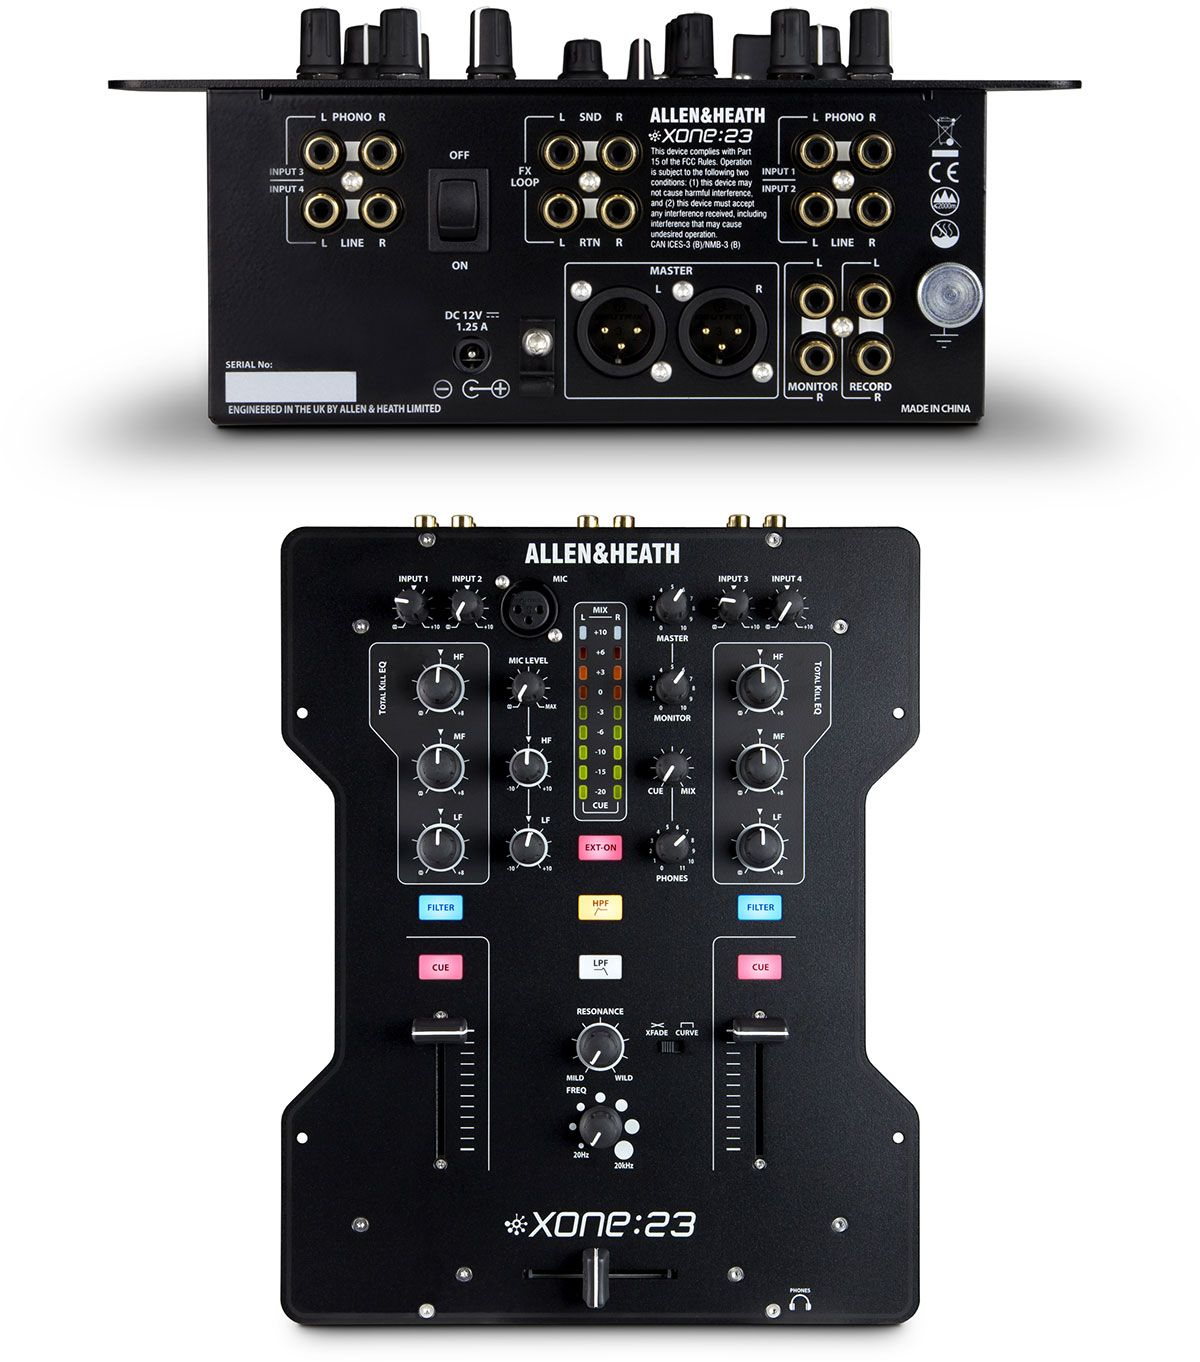 Best DJ Mixer - Allen & Heath Xone:23